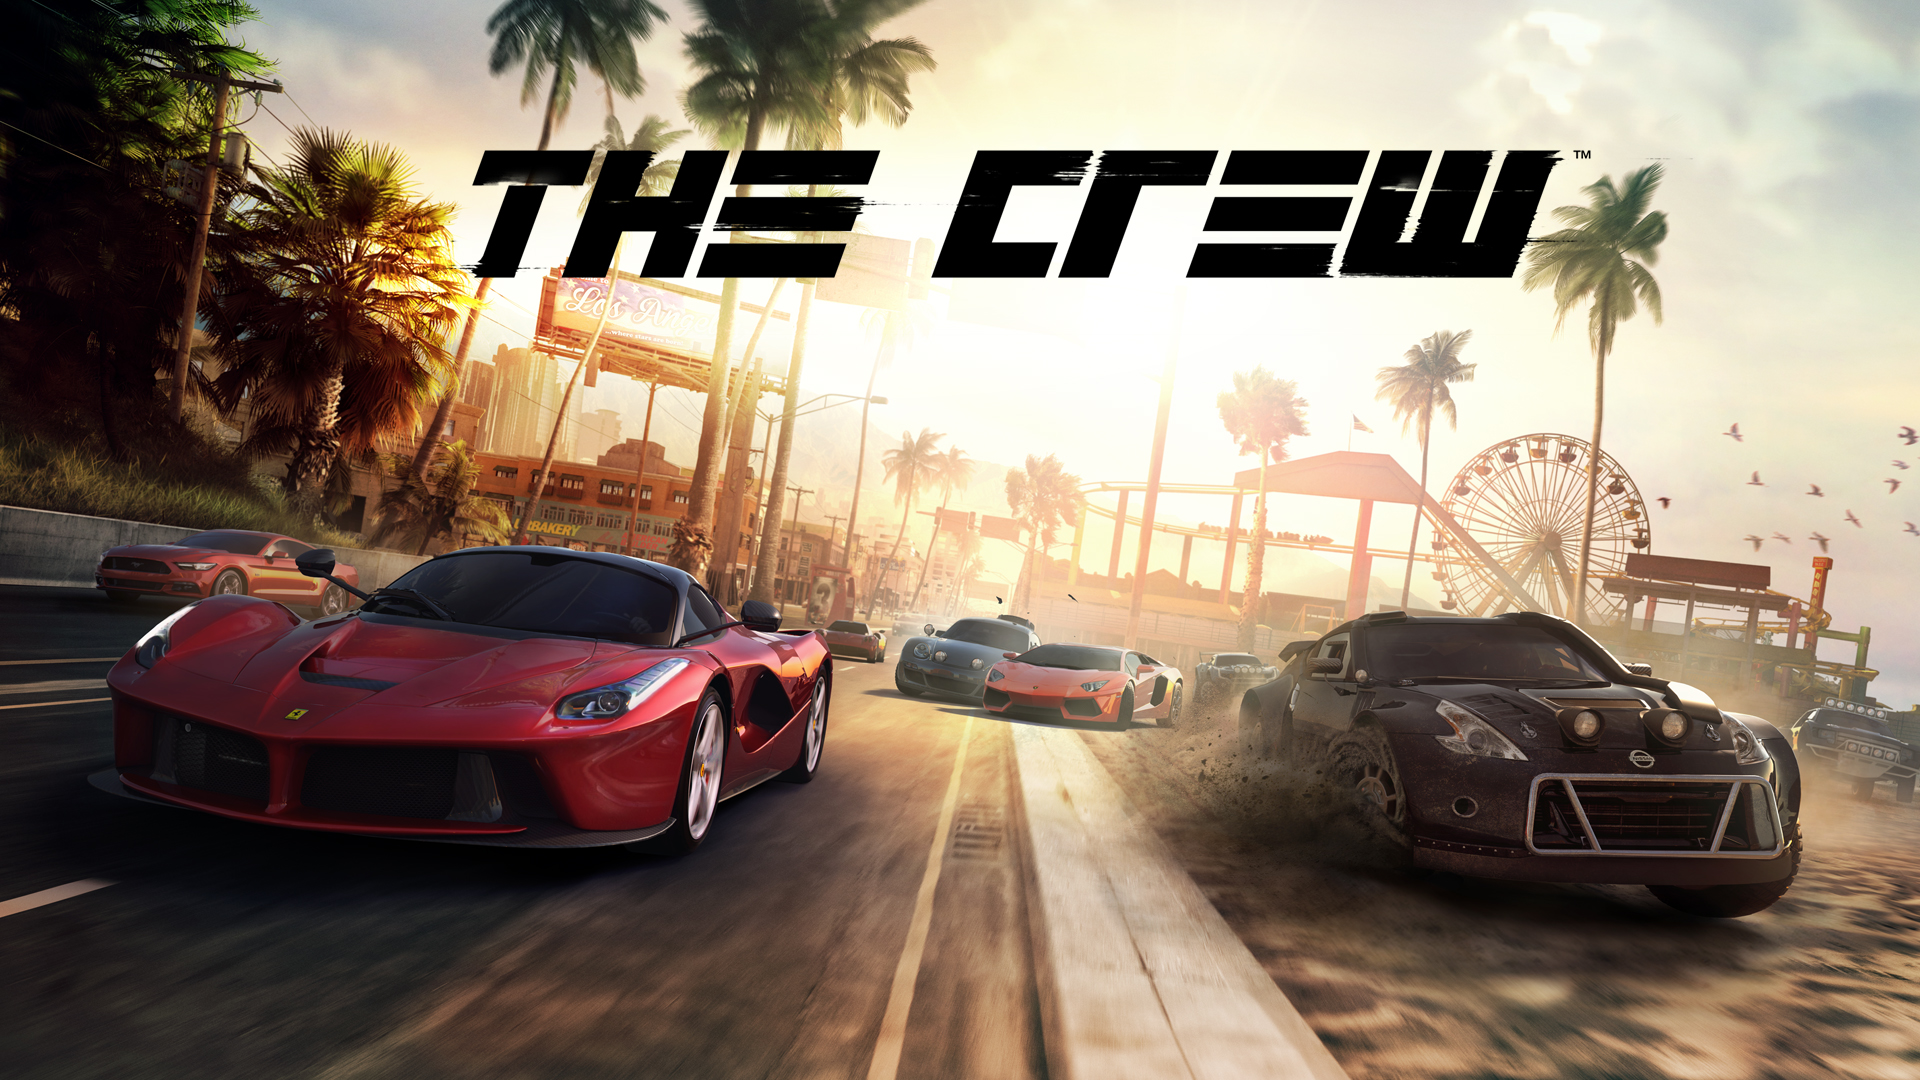 free, ubisoft, uplay, free game, the crew, prince of persia, rayman origins